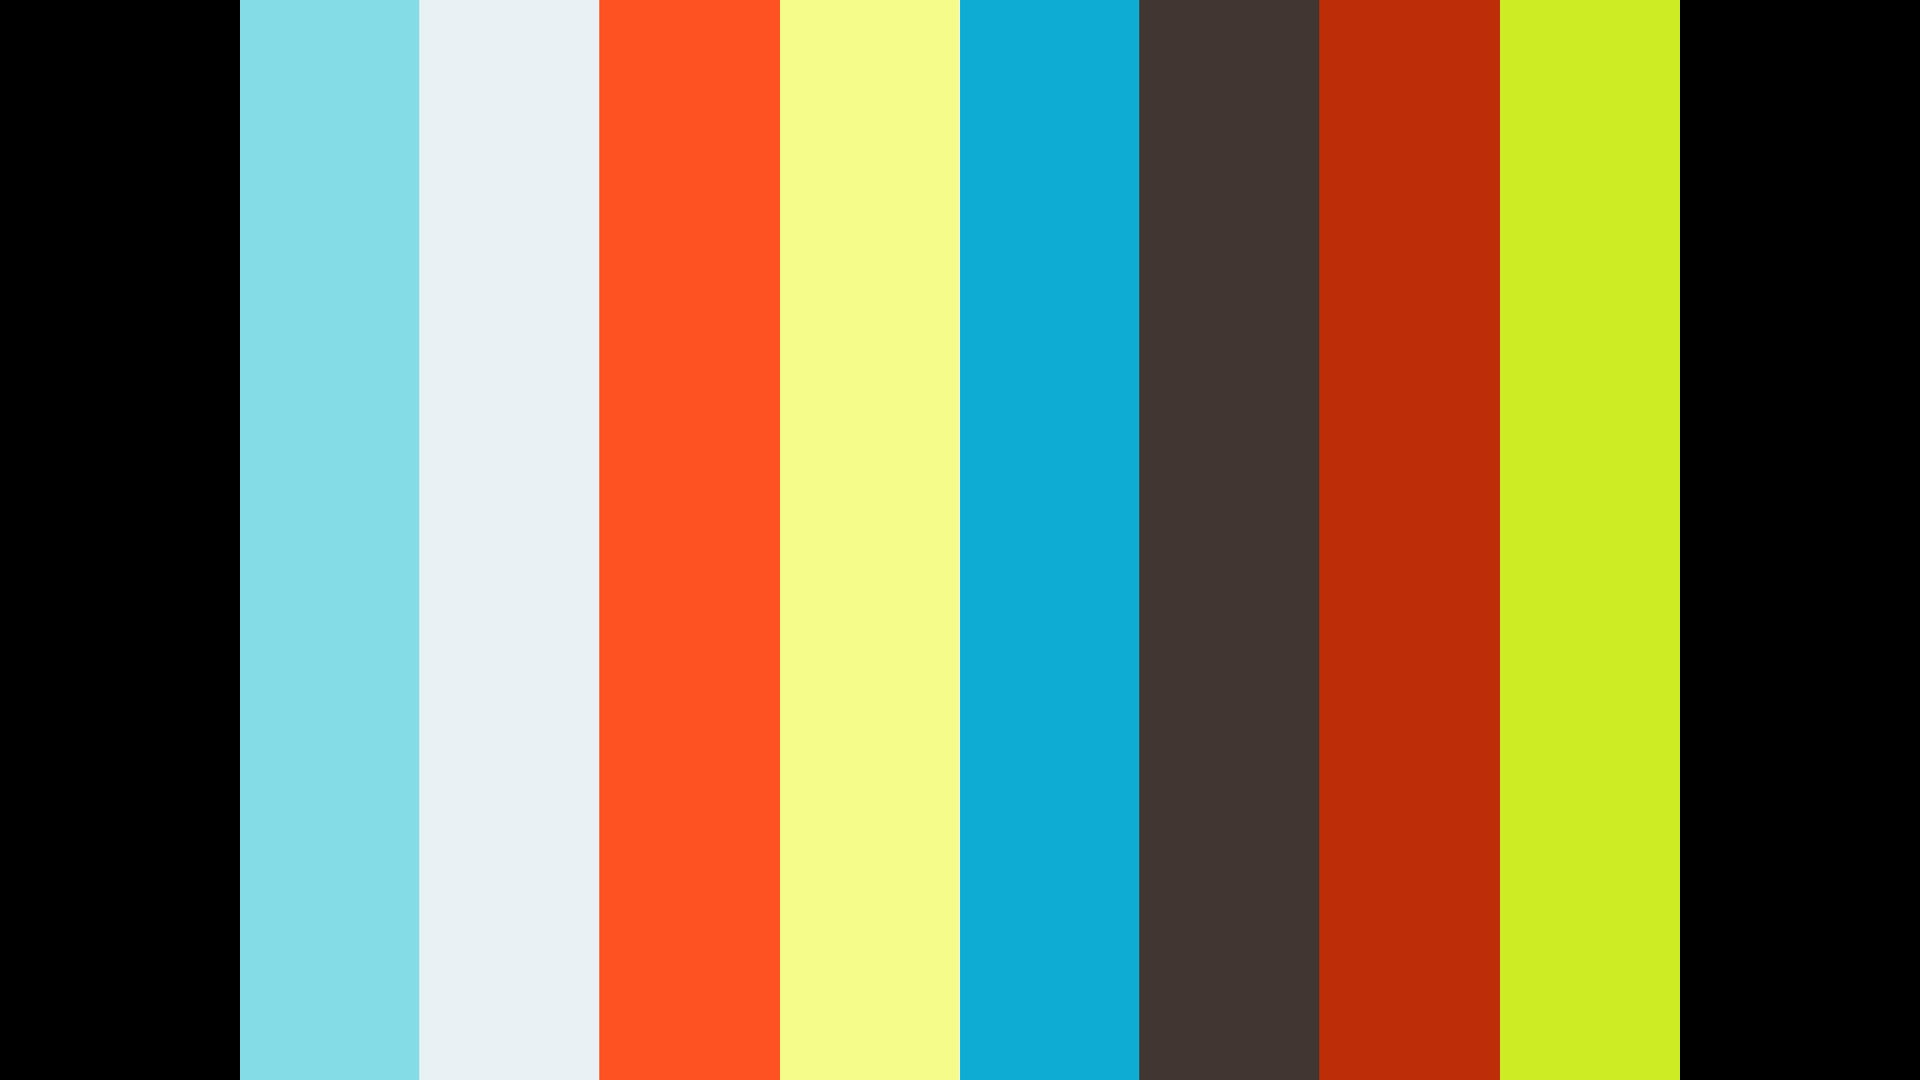 Nike - White Shirt Project